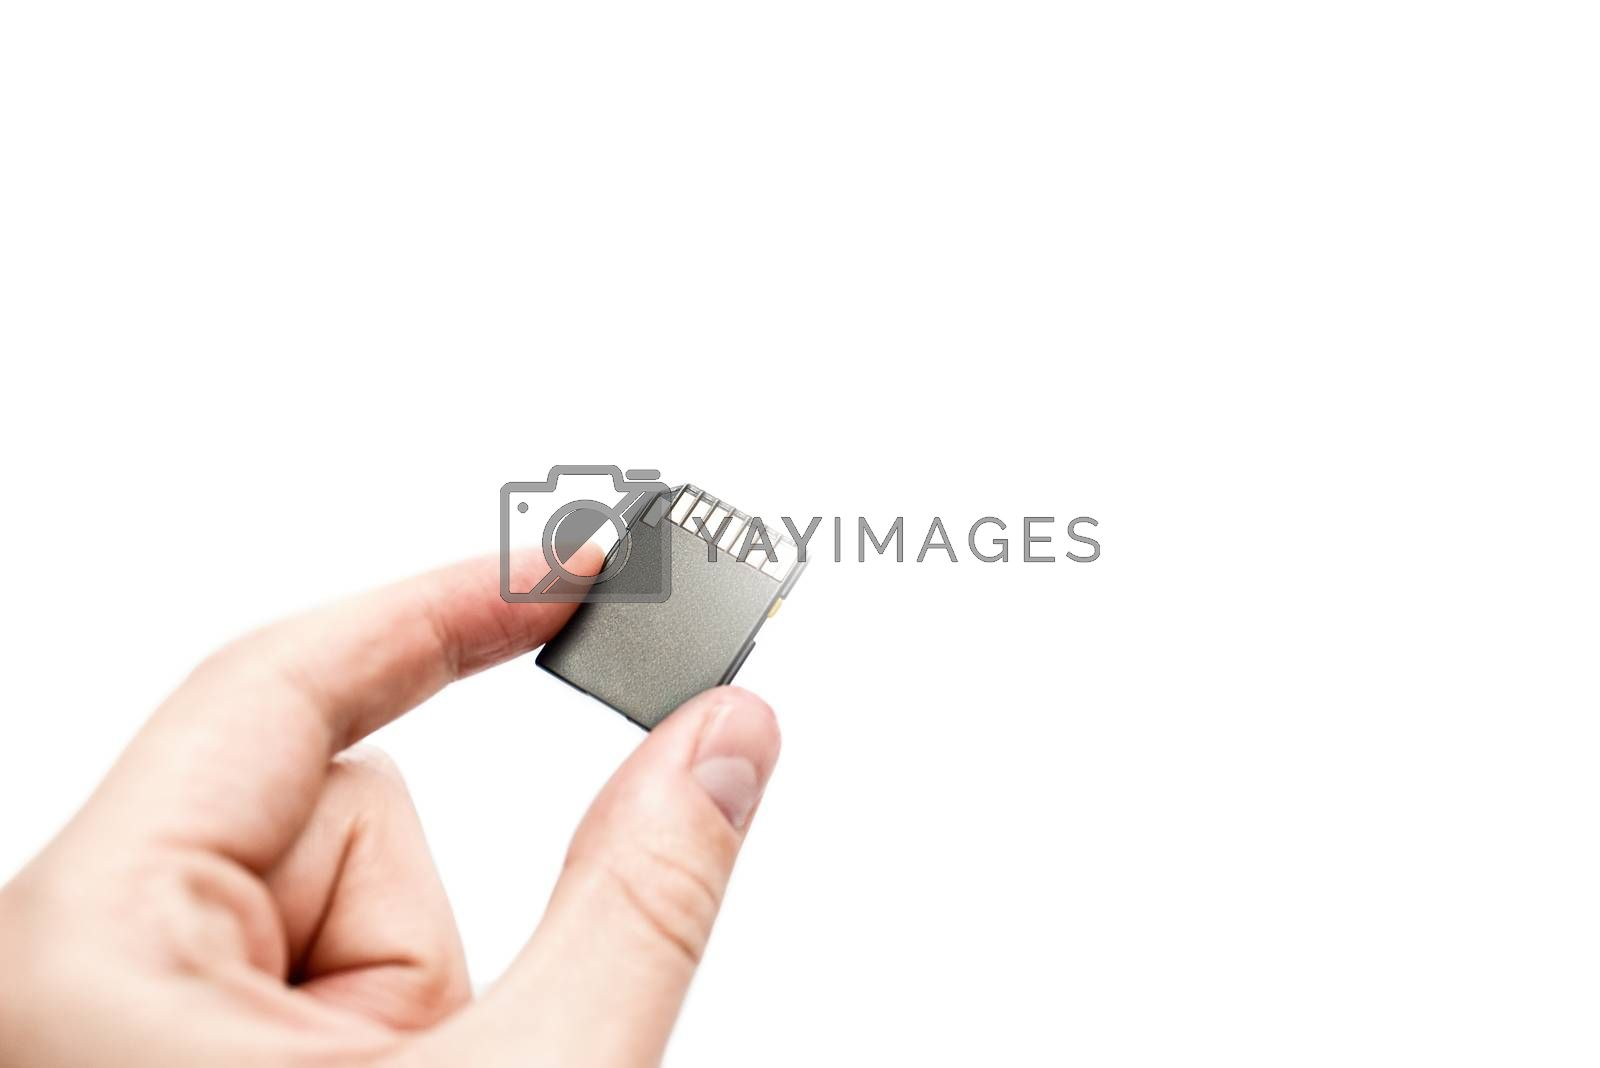 sd card in hand isolated on white background. information concept